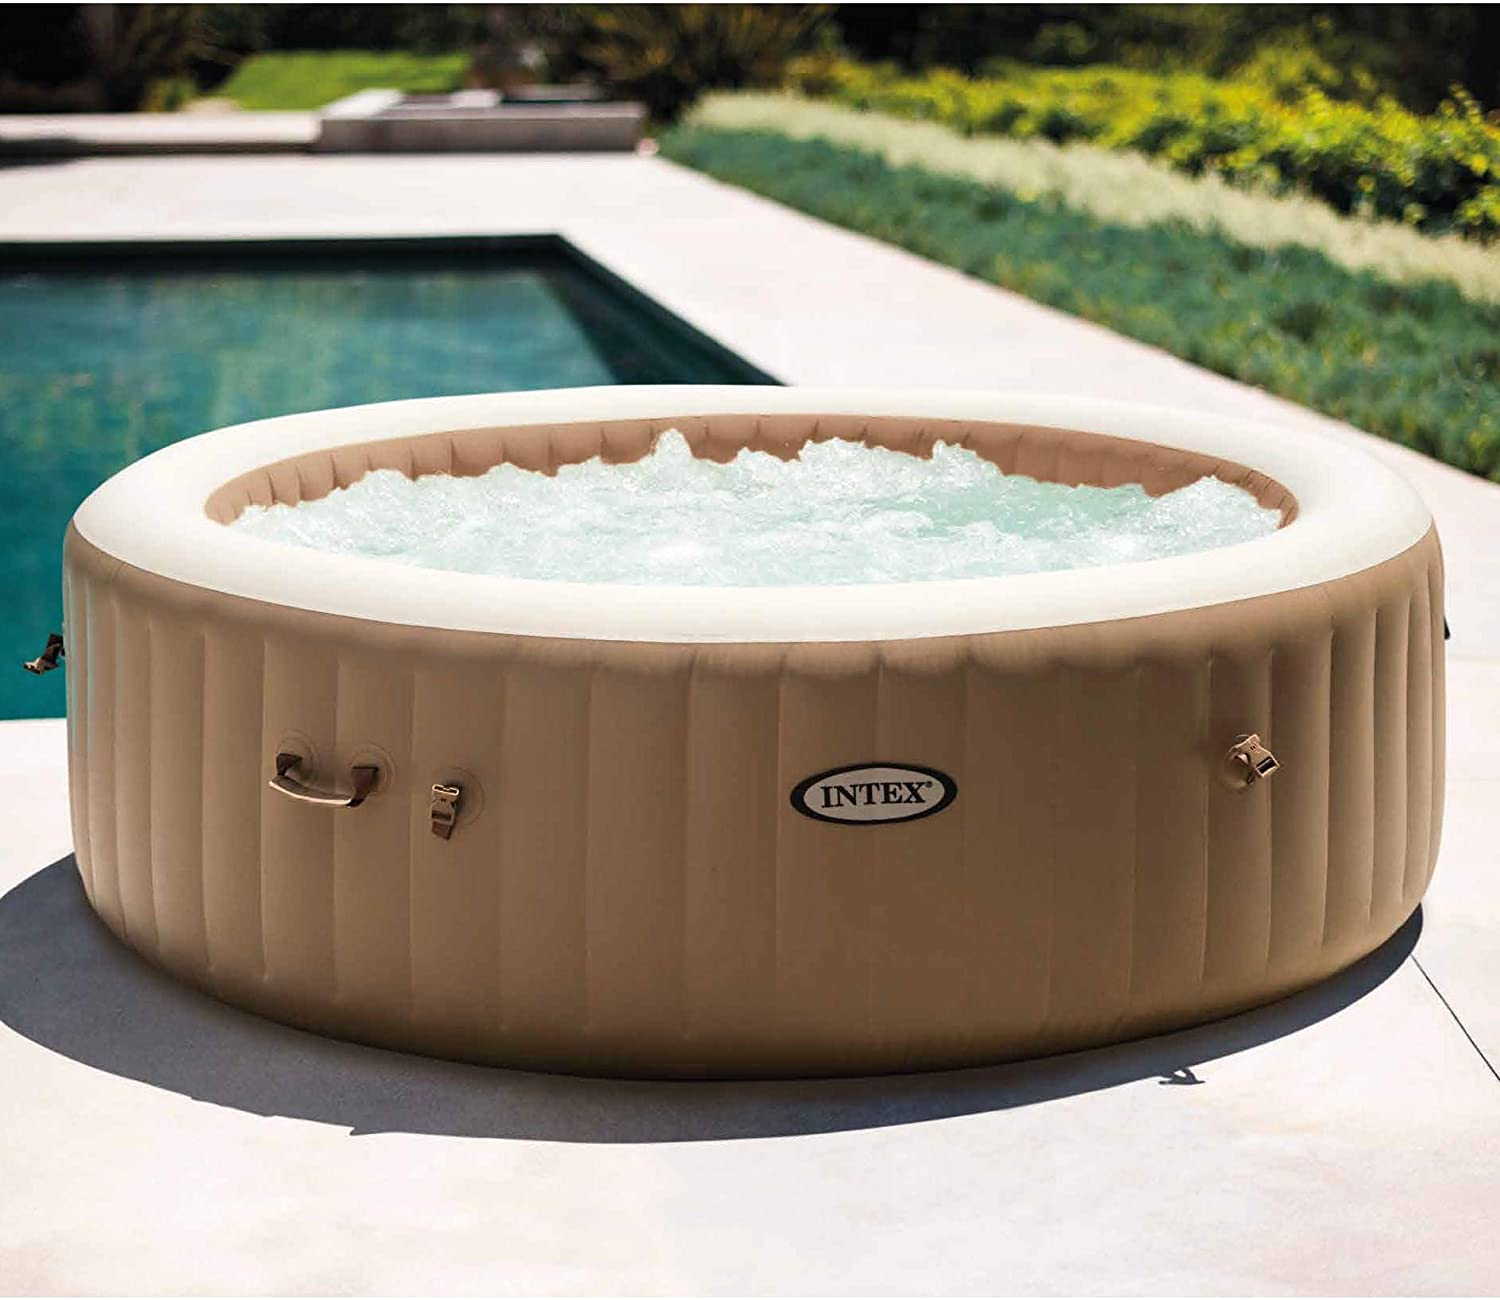 Review of Intex 28427E 85in PureSpa Inflatable Spa, 6-Person